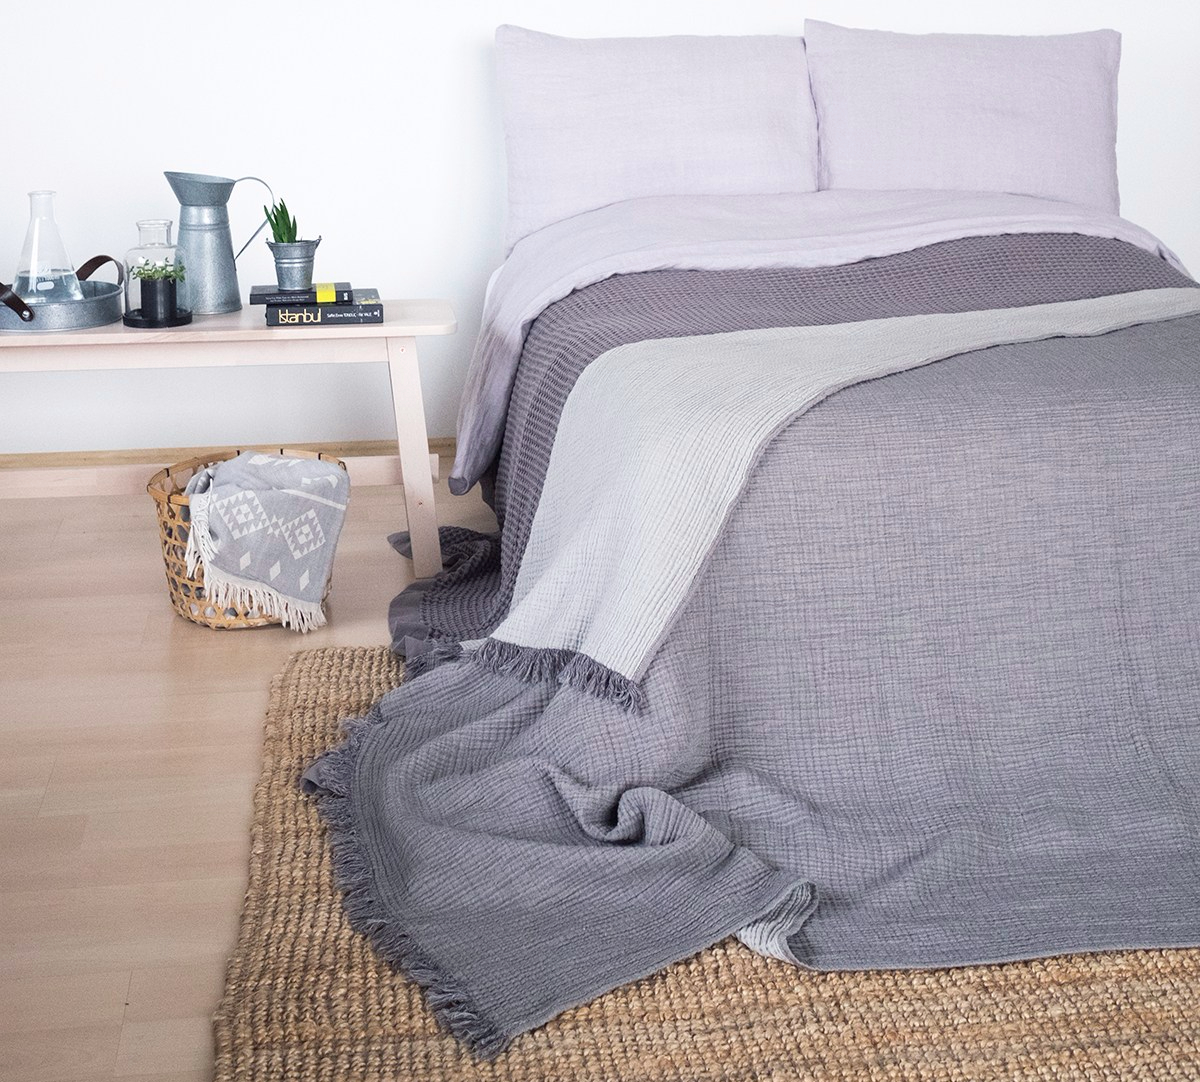 cocoon bed cover8